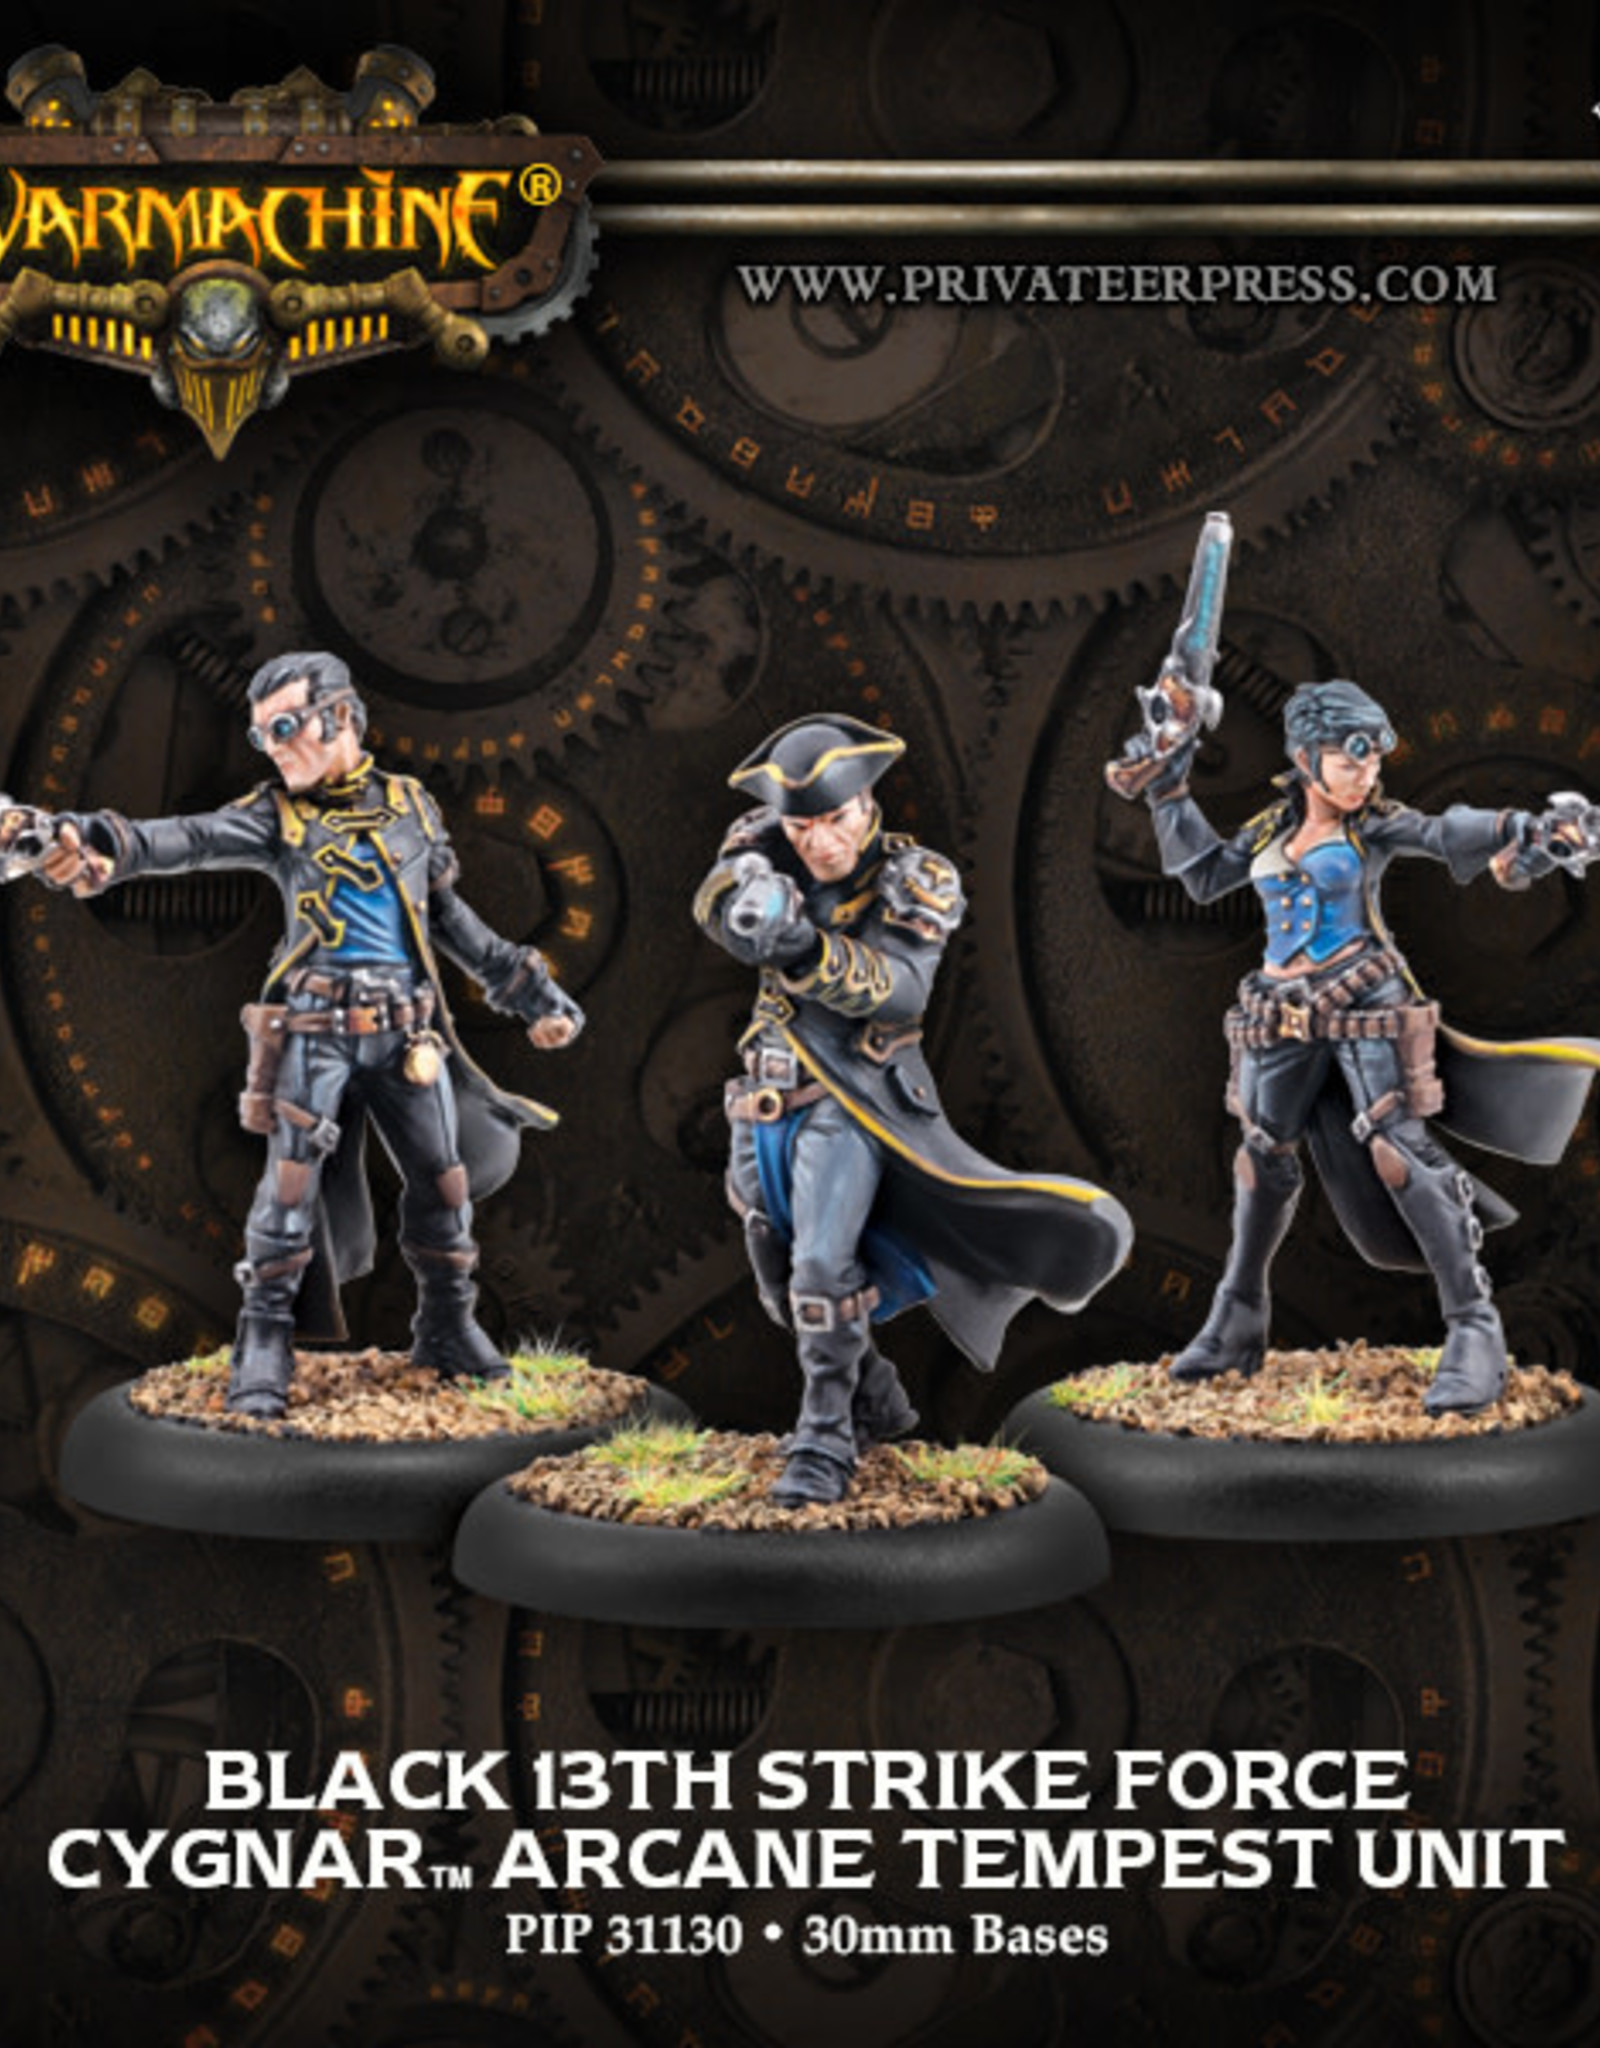 Warmachine Cygnar - Black 13th Strike Force